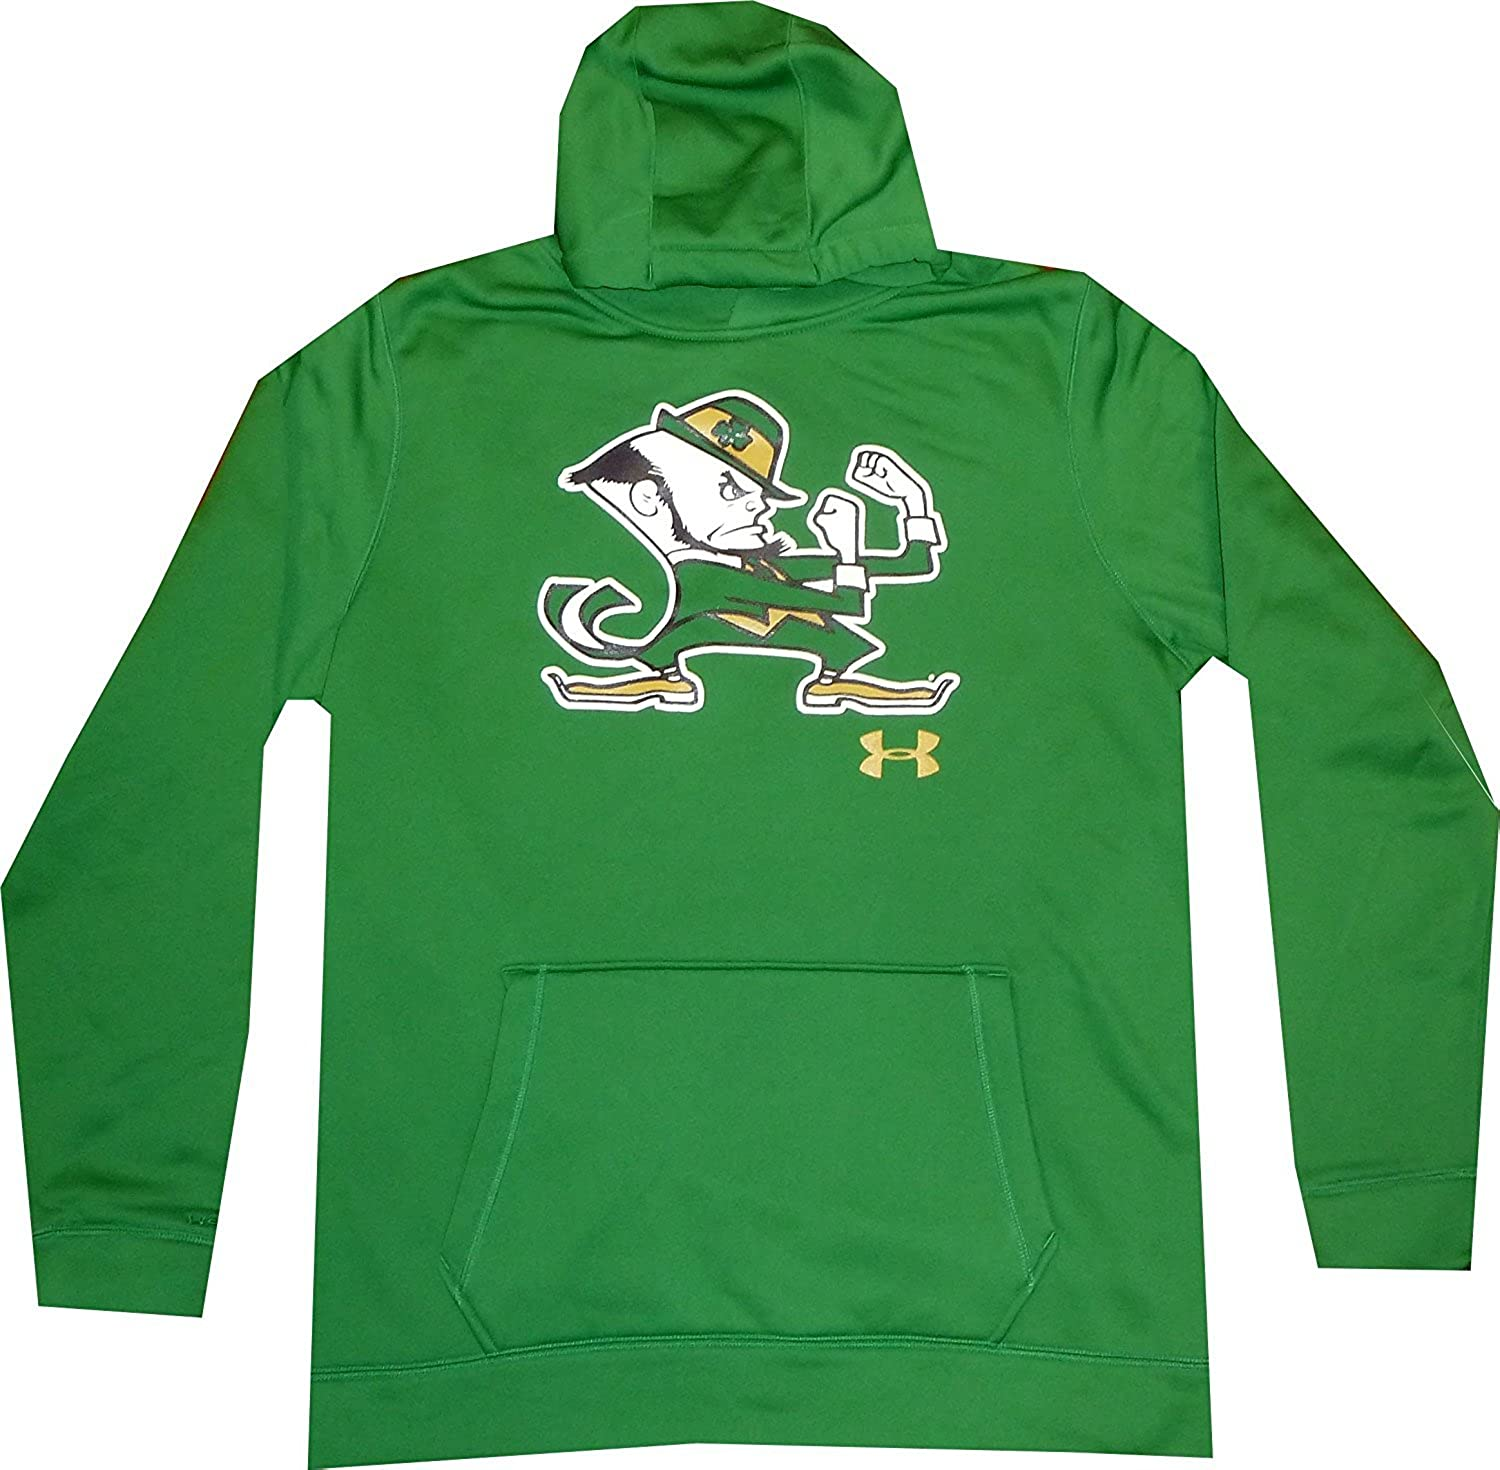 B01M9AGYFR Under Armour Men's Notre Dame Fightin Irish Kelly Green Hoodie Sweatshirt 71syO4PRg-L.UL1500_